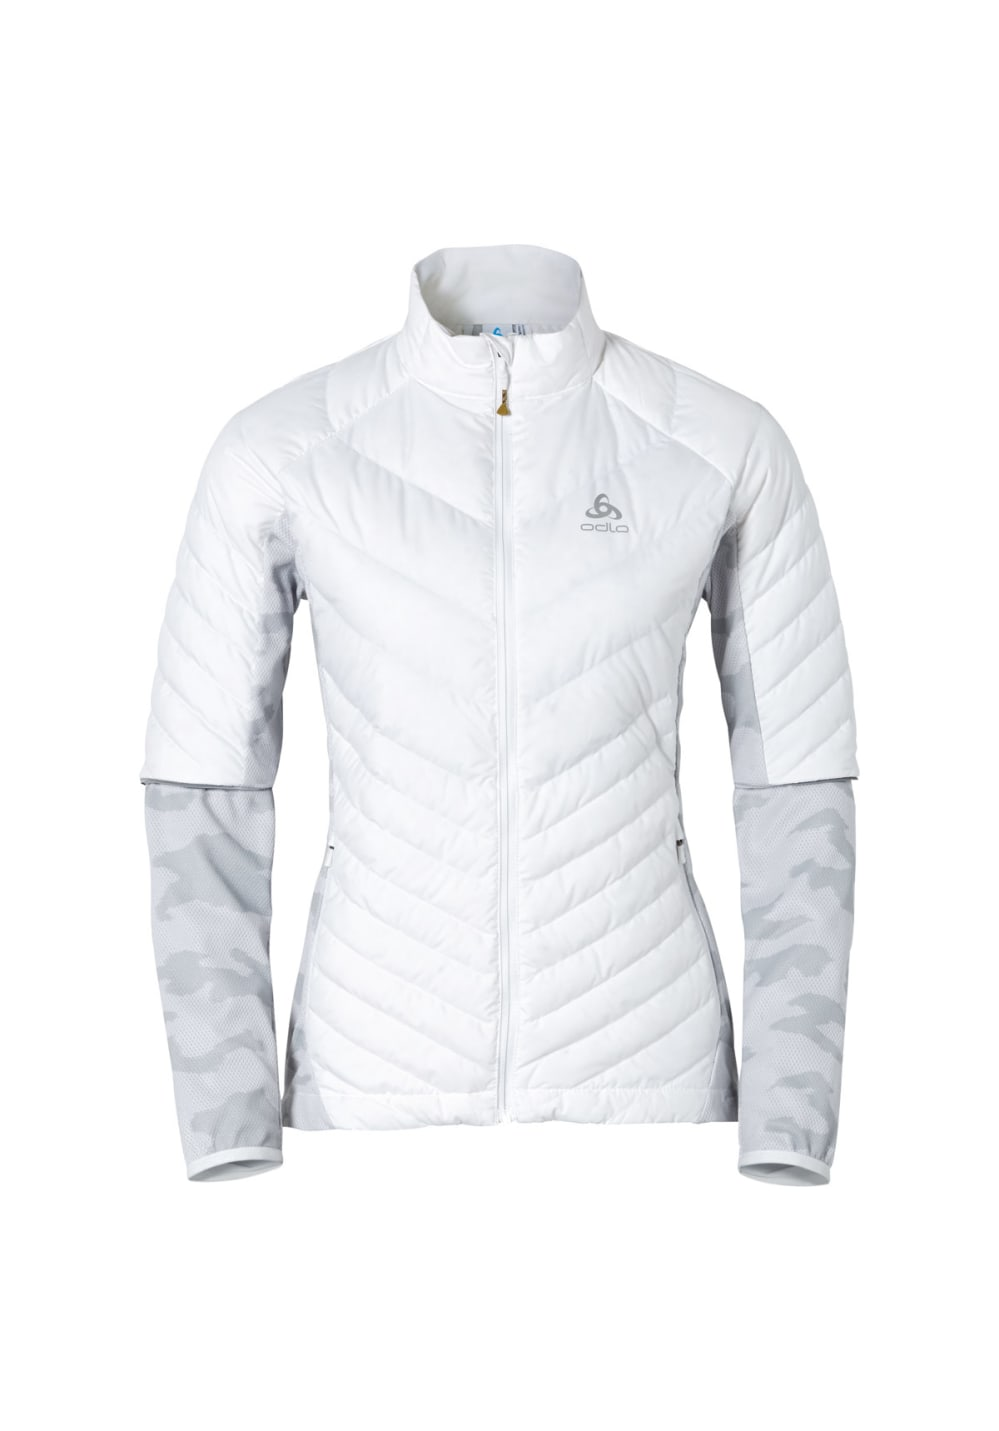 Odlo Jacket Flender Down - Running jackets for Women - White | 21RUN